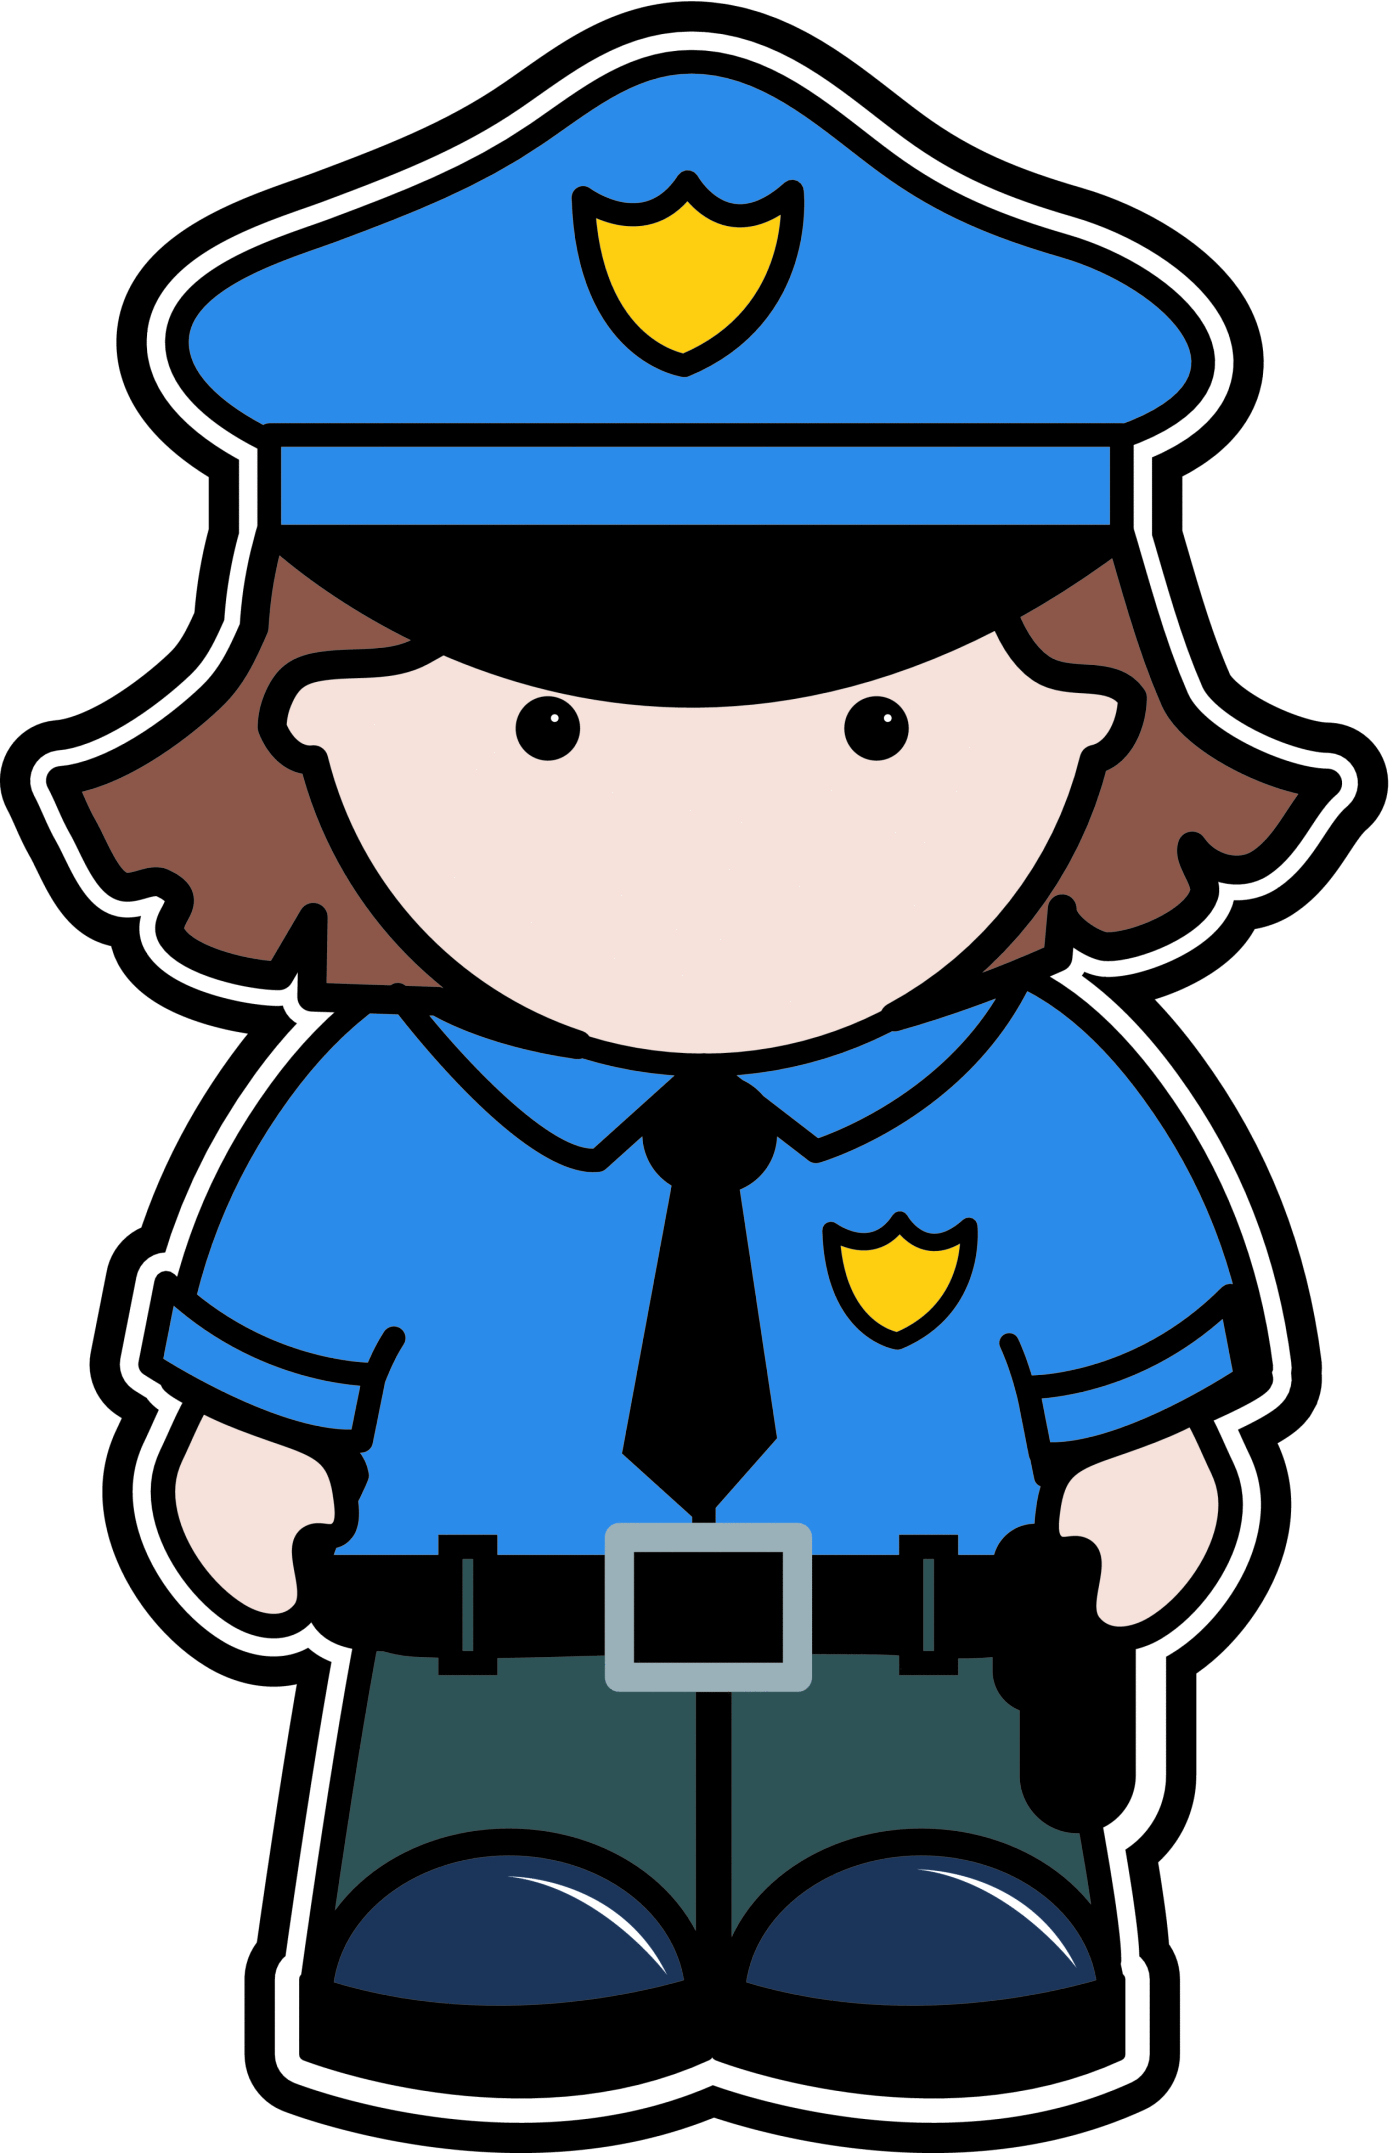 Police Officer Wallpaper Clipart Panda F-Police Officer Wallpaper Clipart Panda Free Clipart Images-17